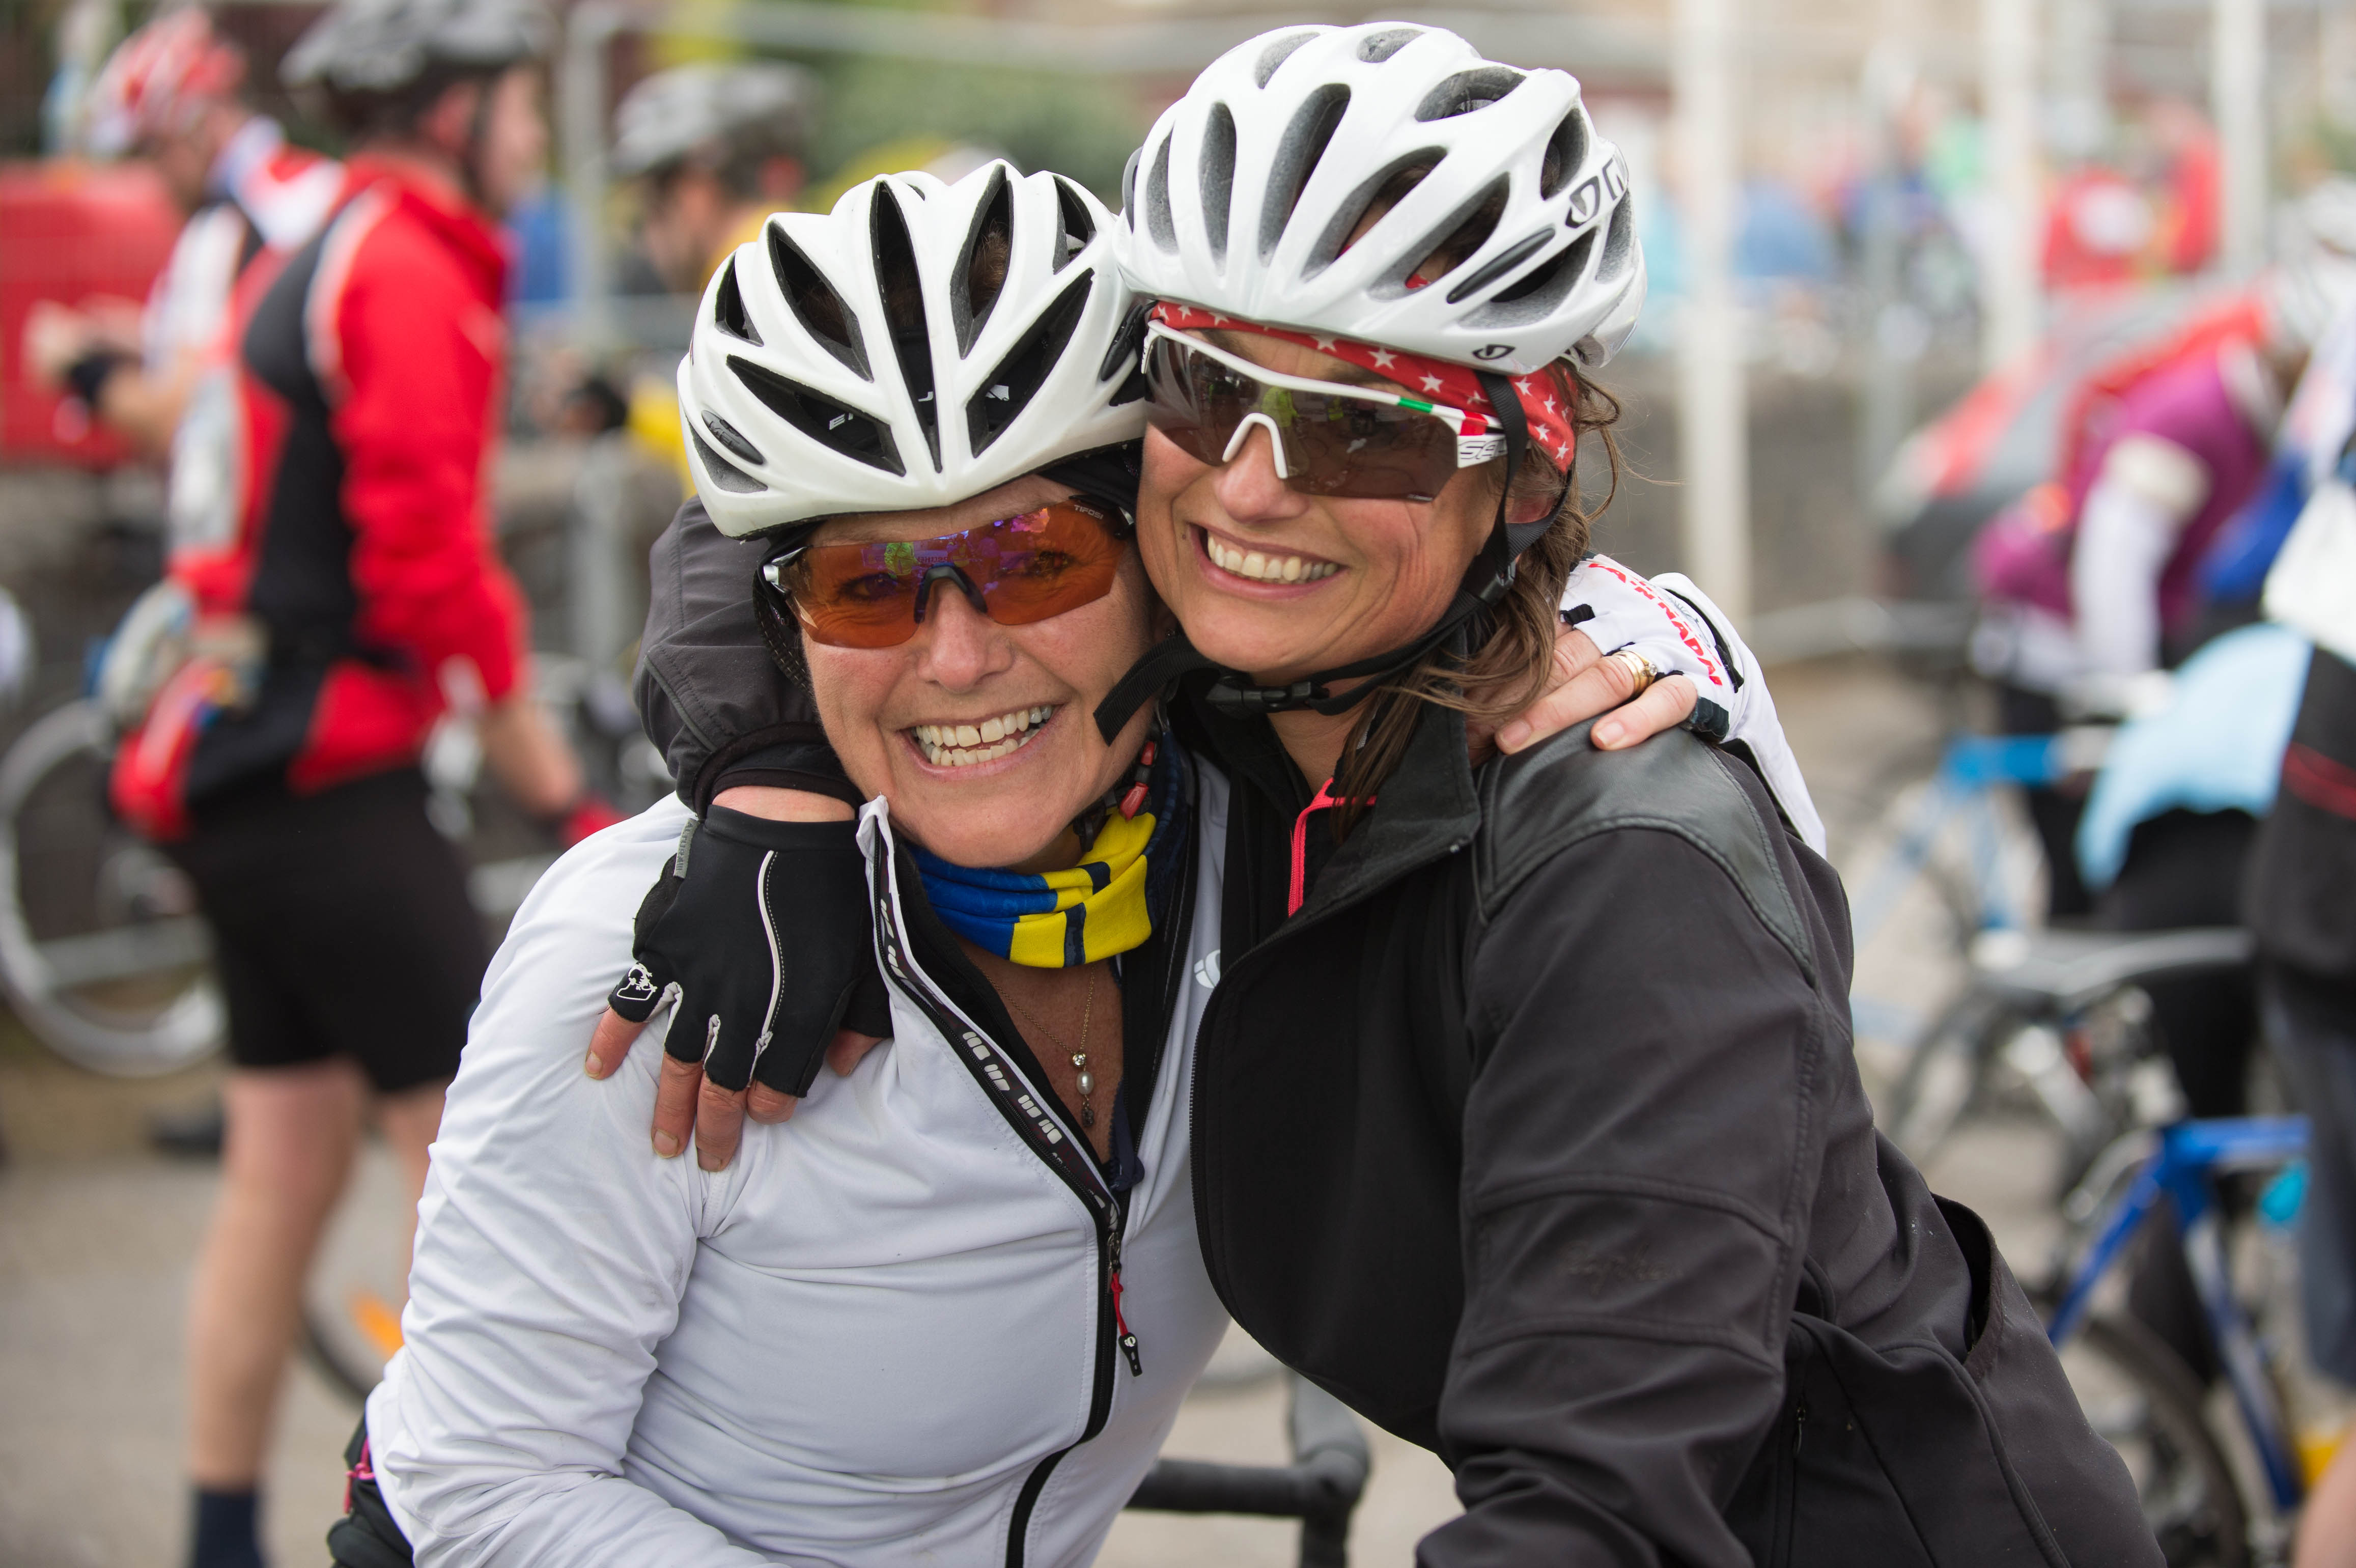 Blog 26: Female entries on the rise at the Marie Curie Cancer Care Etape Caledonia